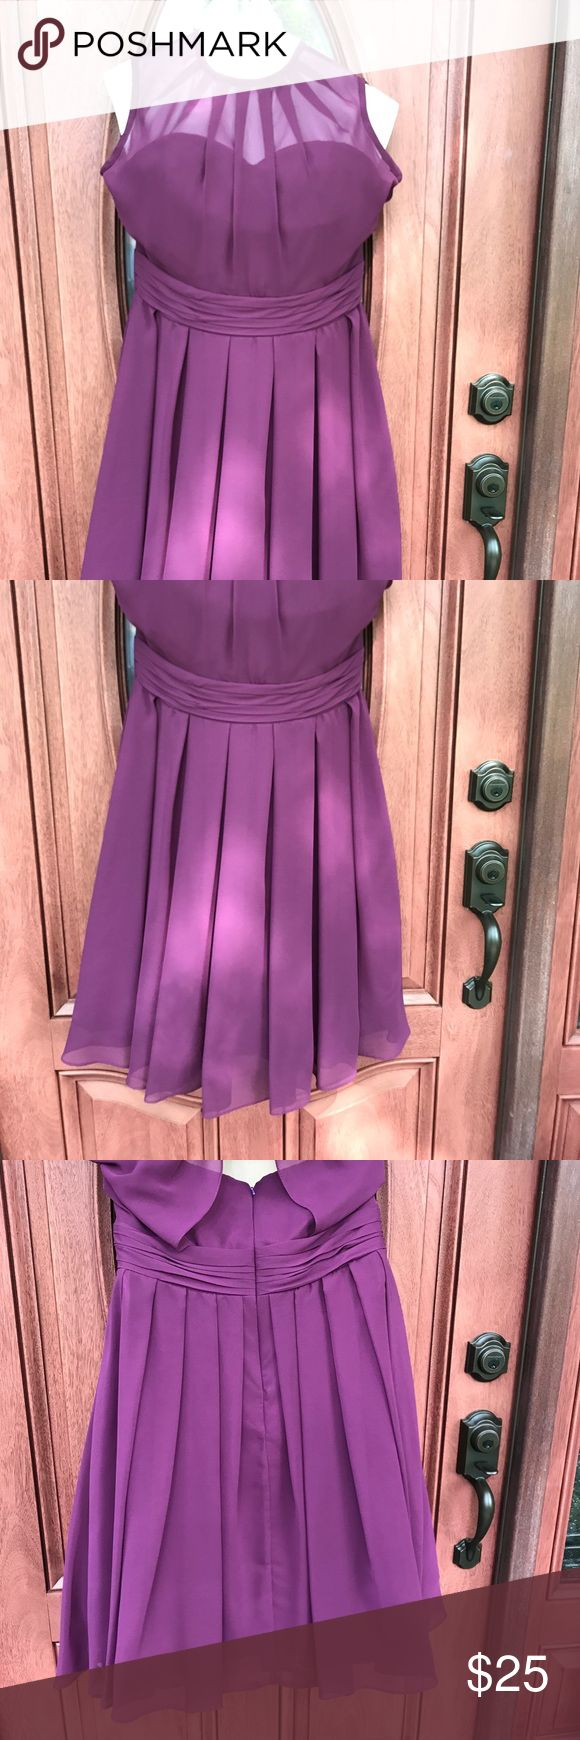 Junior Bridesmaid Dress Grape Purple Below the knee purple junior bridesmaid dress.  Sleeveless.  Junior size 16.  Great for any formal occasion. Worn once. Dry cleaned. Lanting Bride Dresses Formal